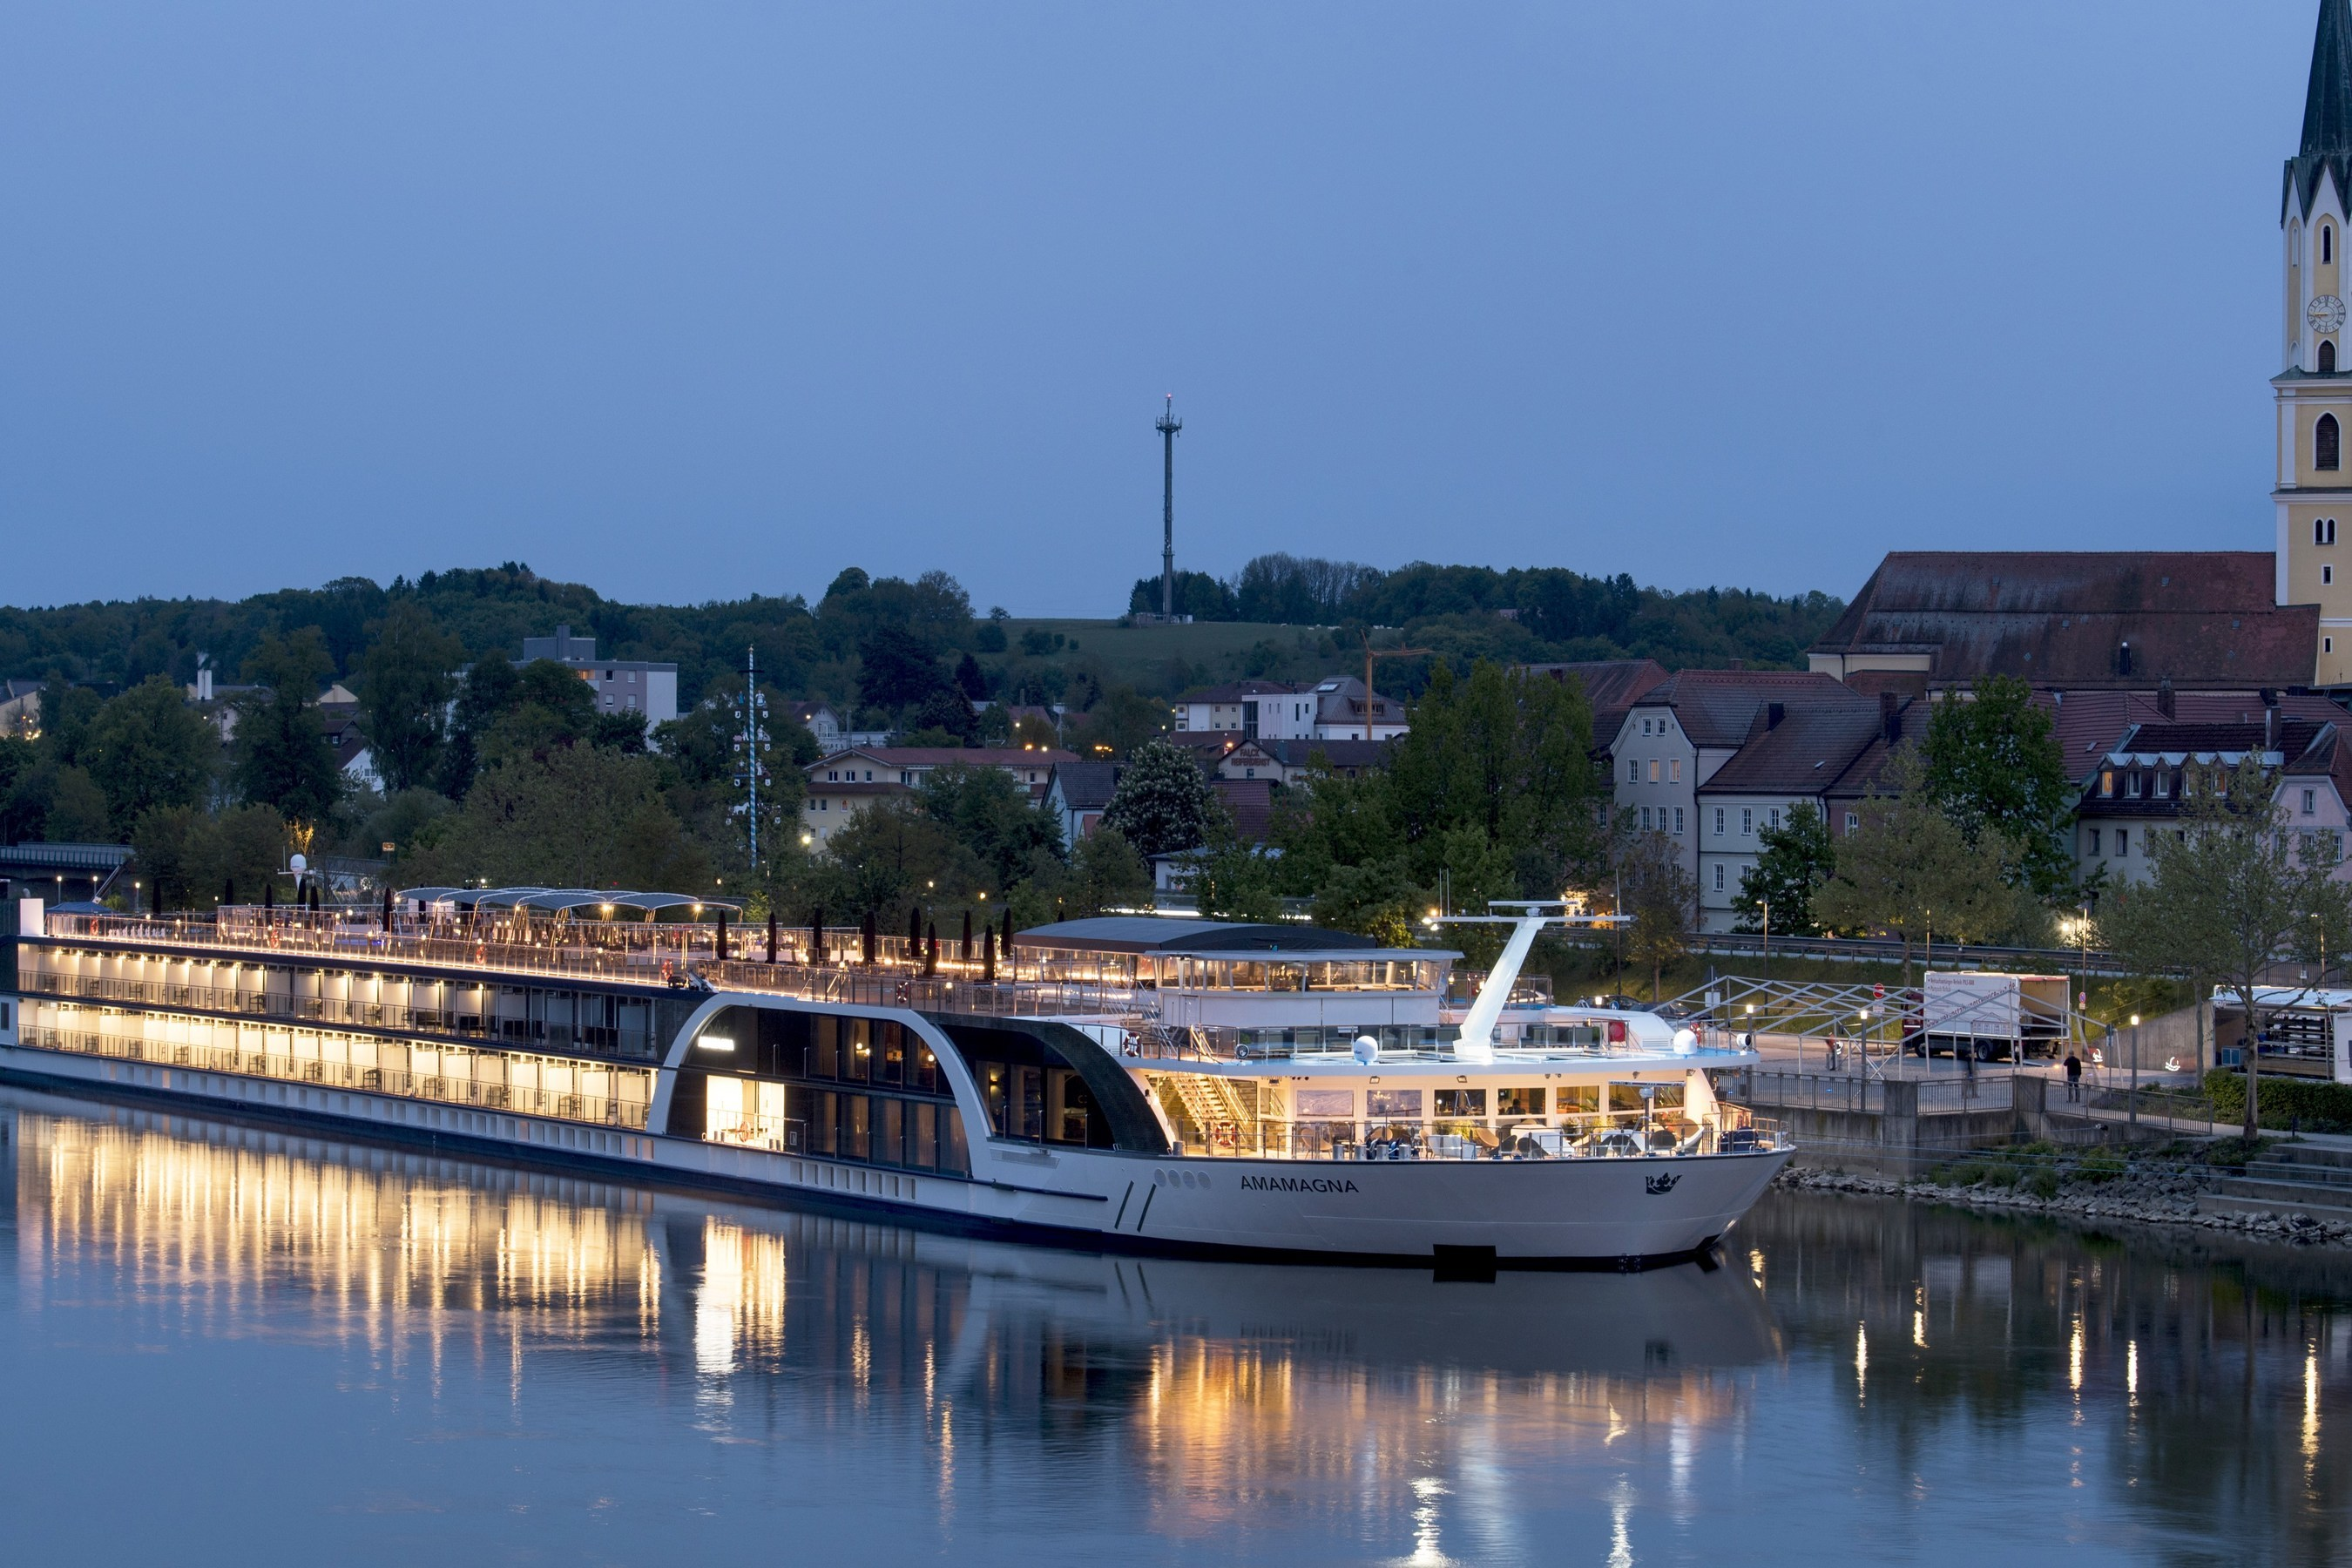 AmaWaterways' Revolutionary Ship, AmaMagna, Welcomes First